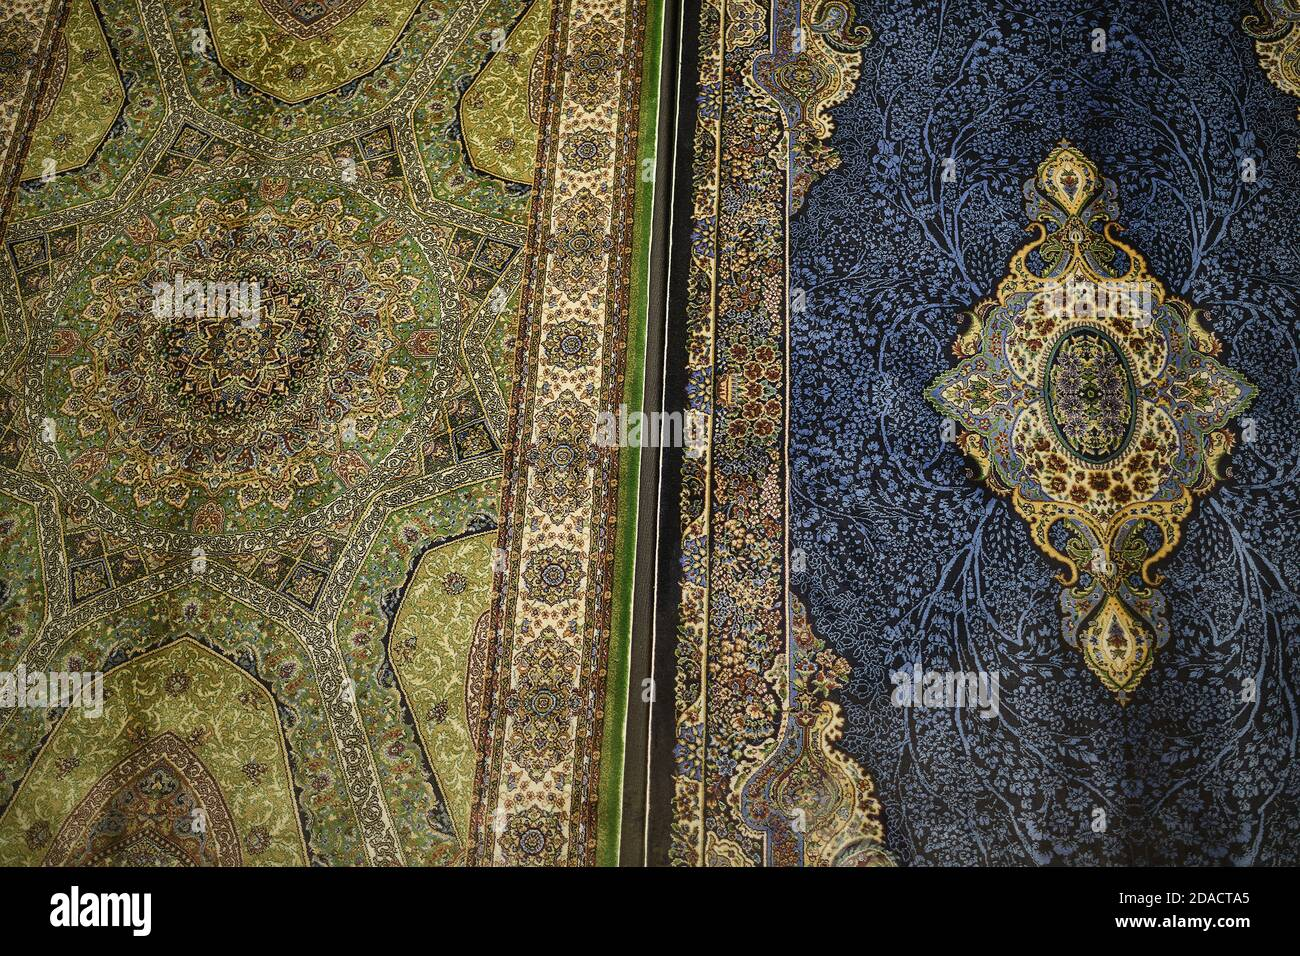 Closeup of colourful green and blue handmade Turkish carpets with intricate patterns and designs, Istanbul, Turkey Stock Photo